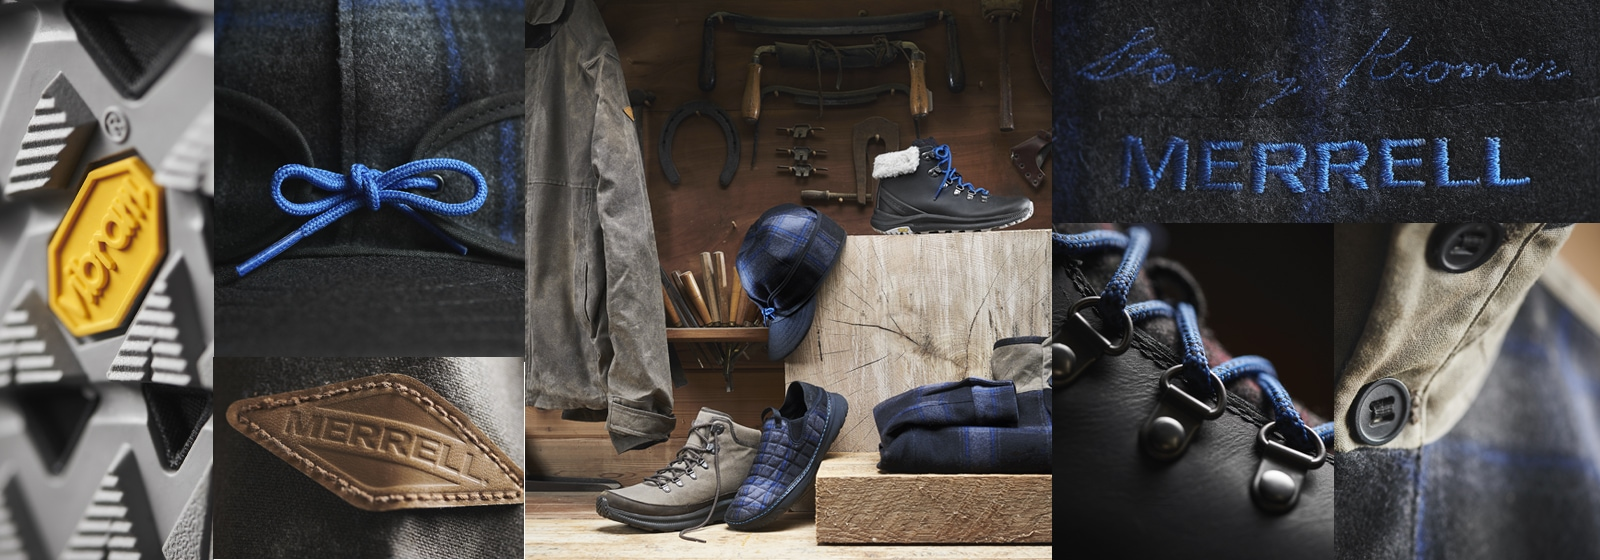 Merrell X Stormy Kromer Product Collage